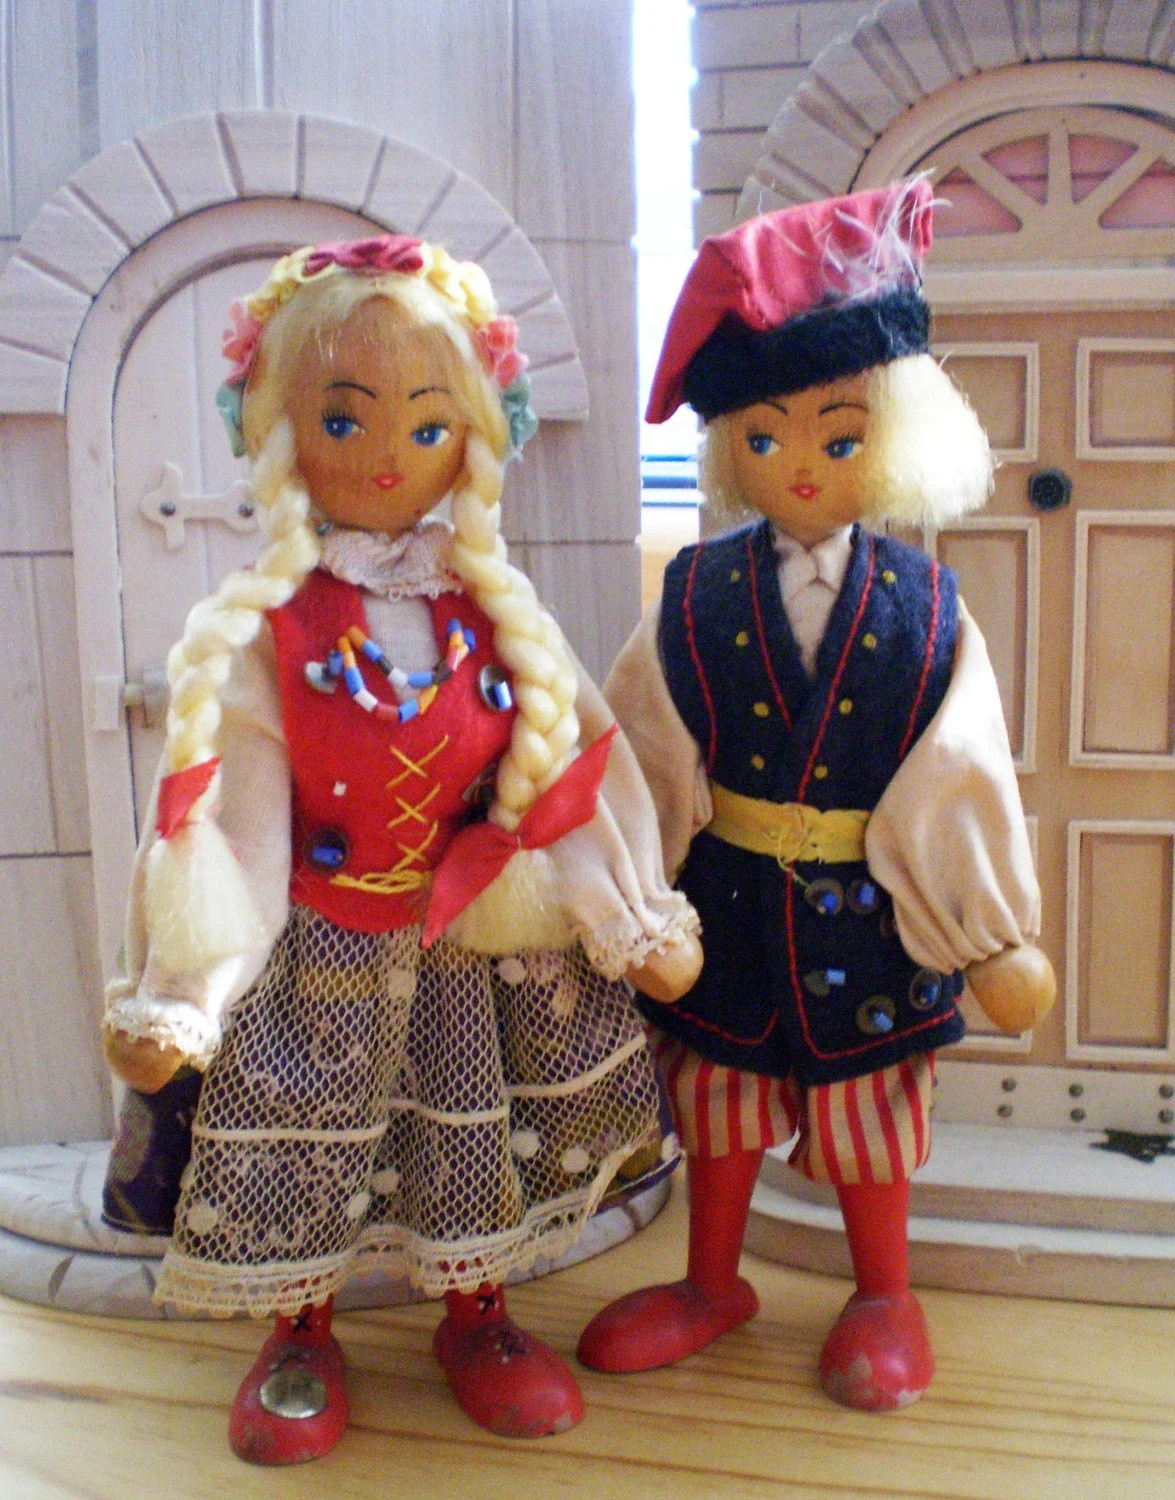 Vintage Wooden Polish Peg Doll Couple Dressed in Traditional Costumes Poseable Hand Painted Faces Hand Made